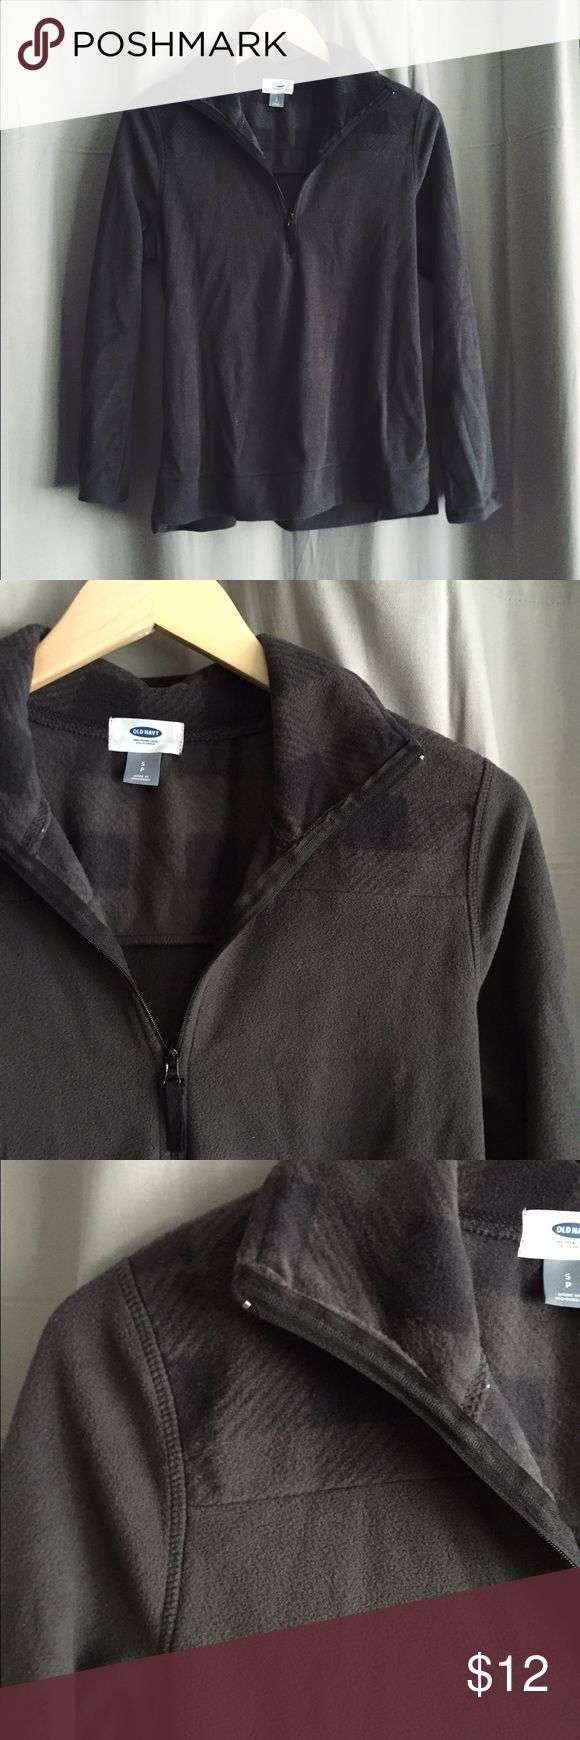 Old Navy fleece pullover Old Navy charcoal gray fleece quarter zip pullover sweater. Size small Old Navy Sweaters